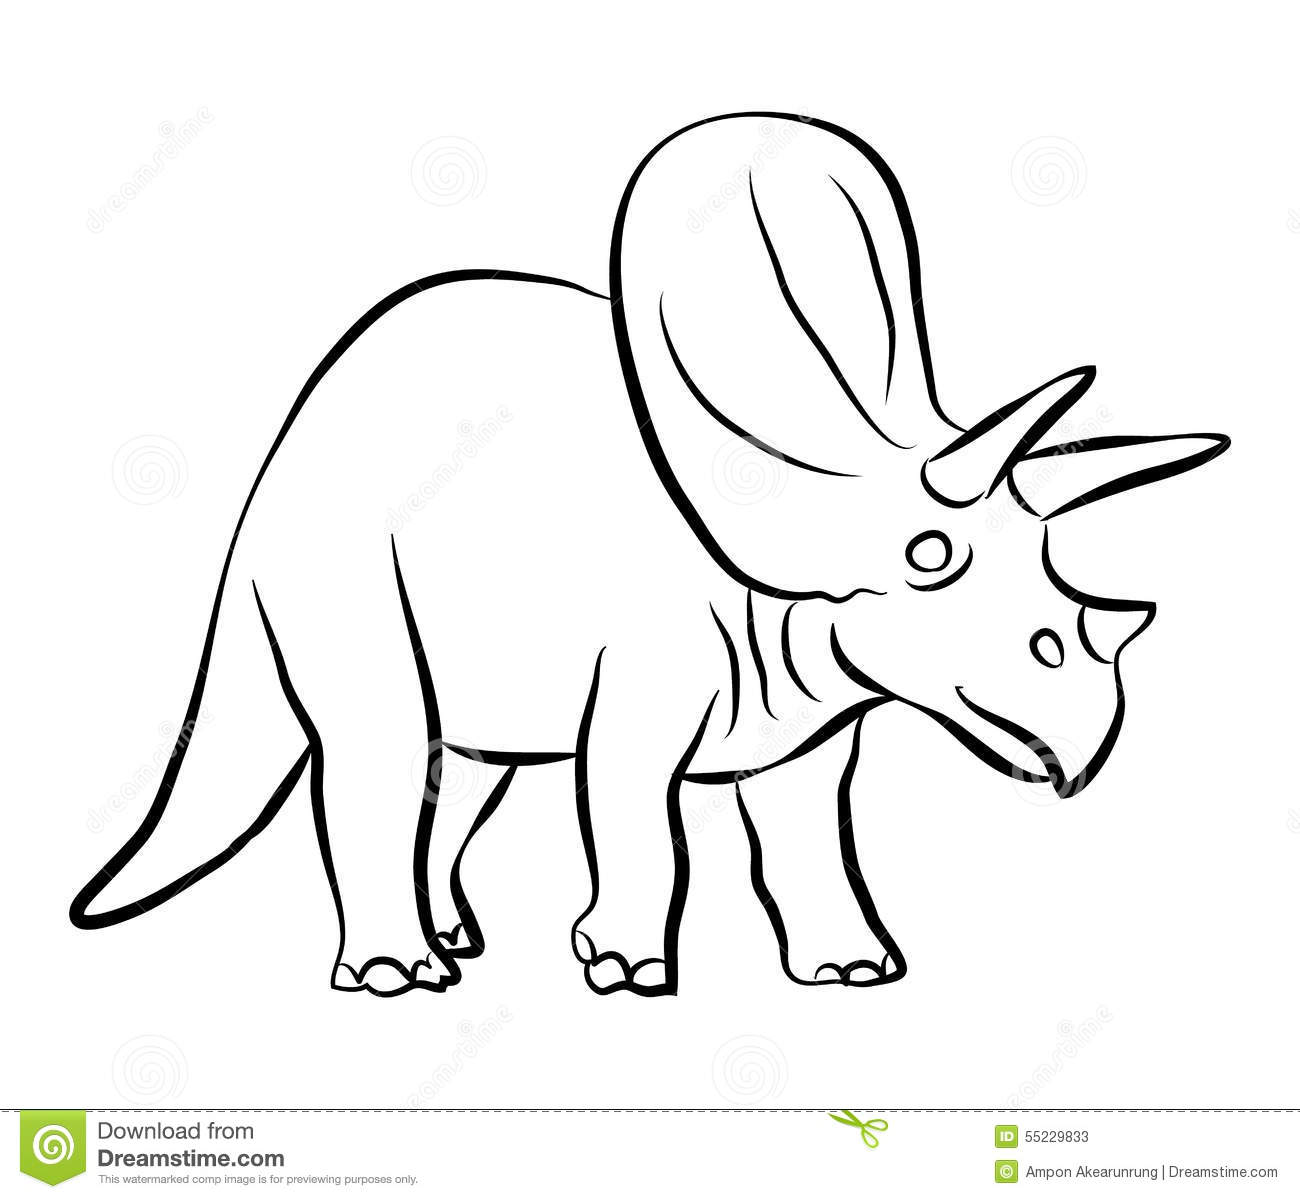 Dinosaurs Triceratops Outline Stock Vector